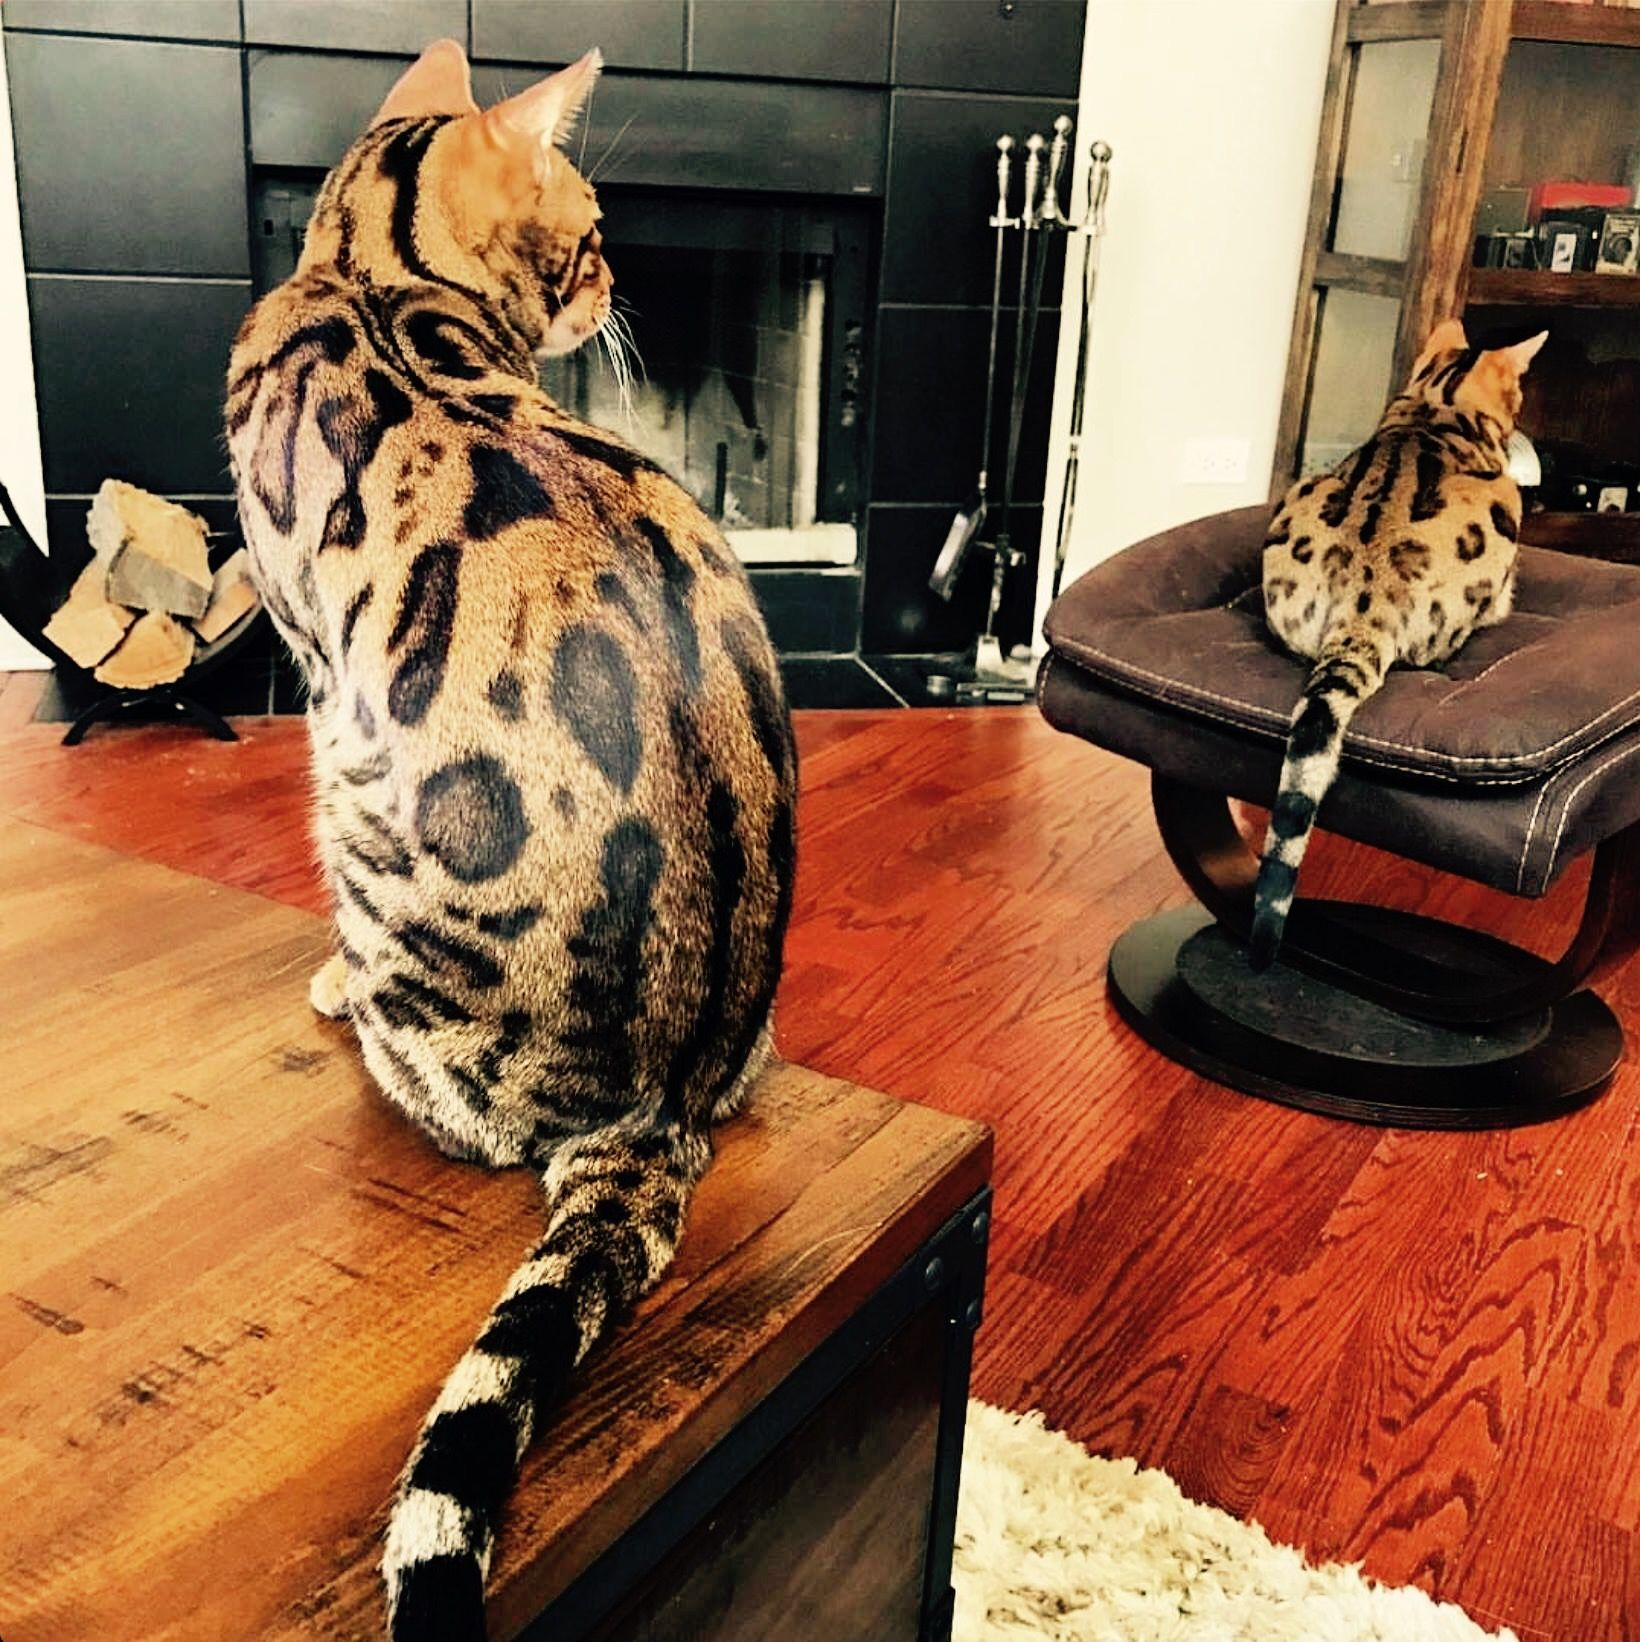 Pin by Nellie Chérie on Stuff! Bengal cat, Cat